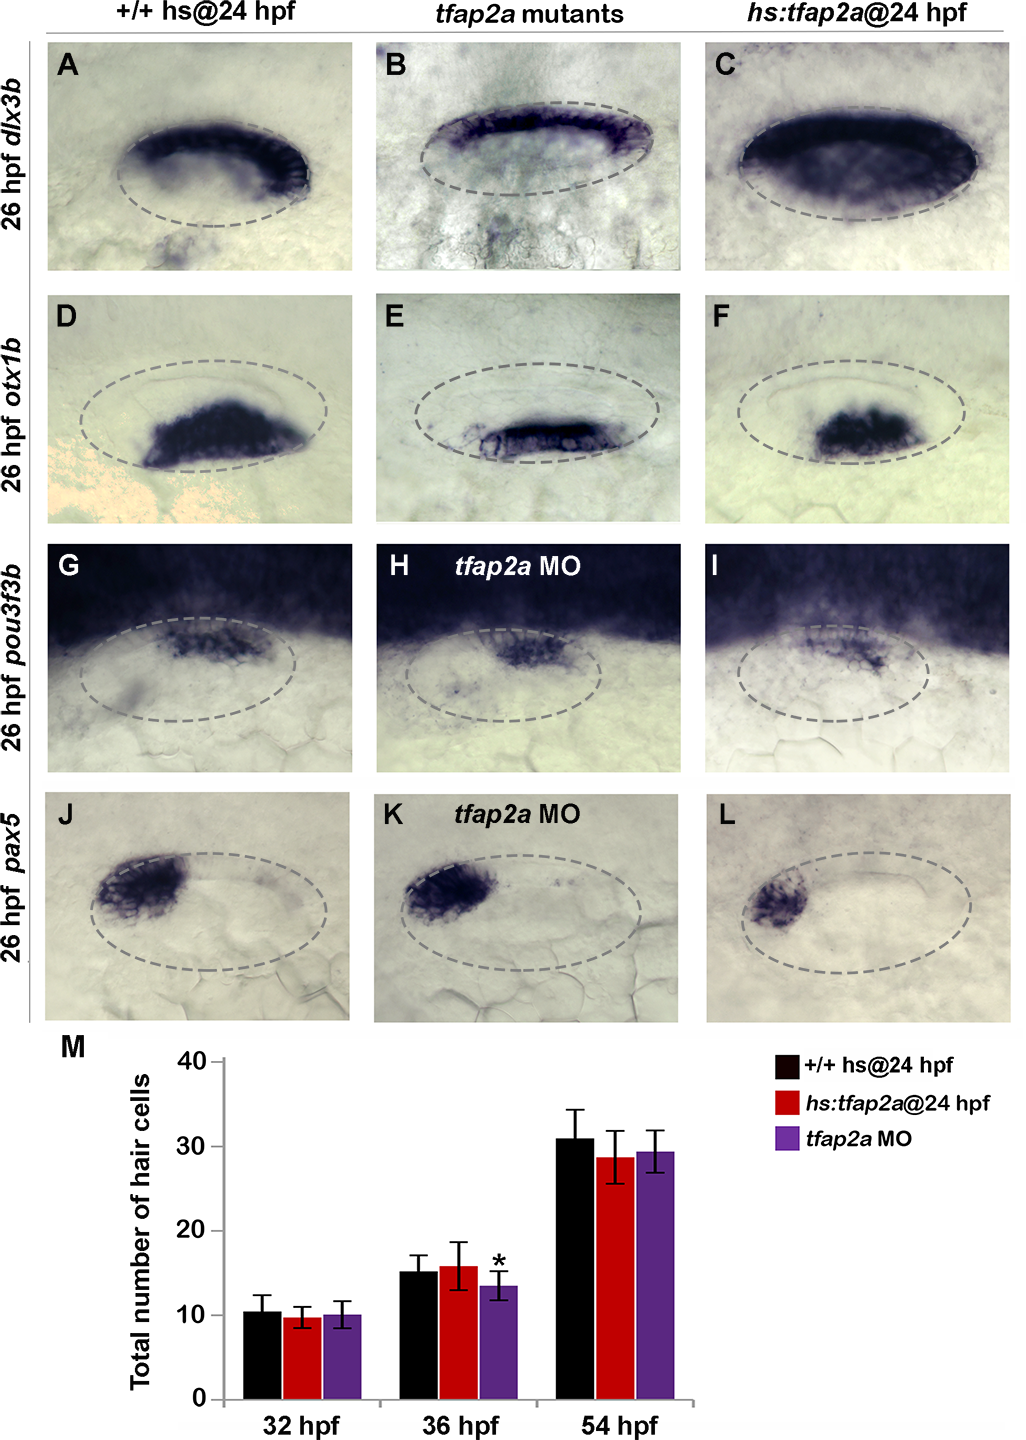 Effects of <i>tfap2a</i> knockdown and overexpression on otic vesicle patterning.